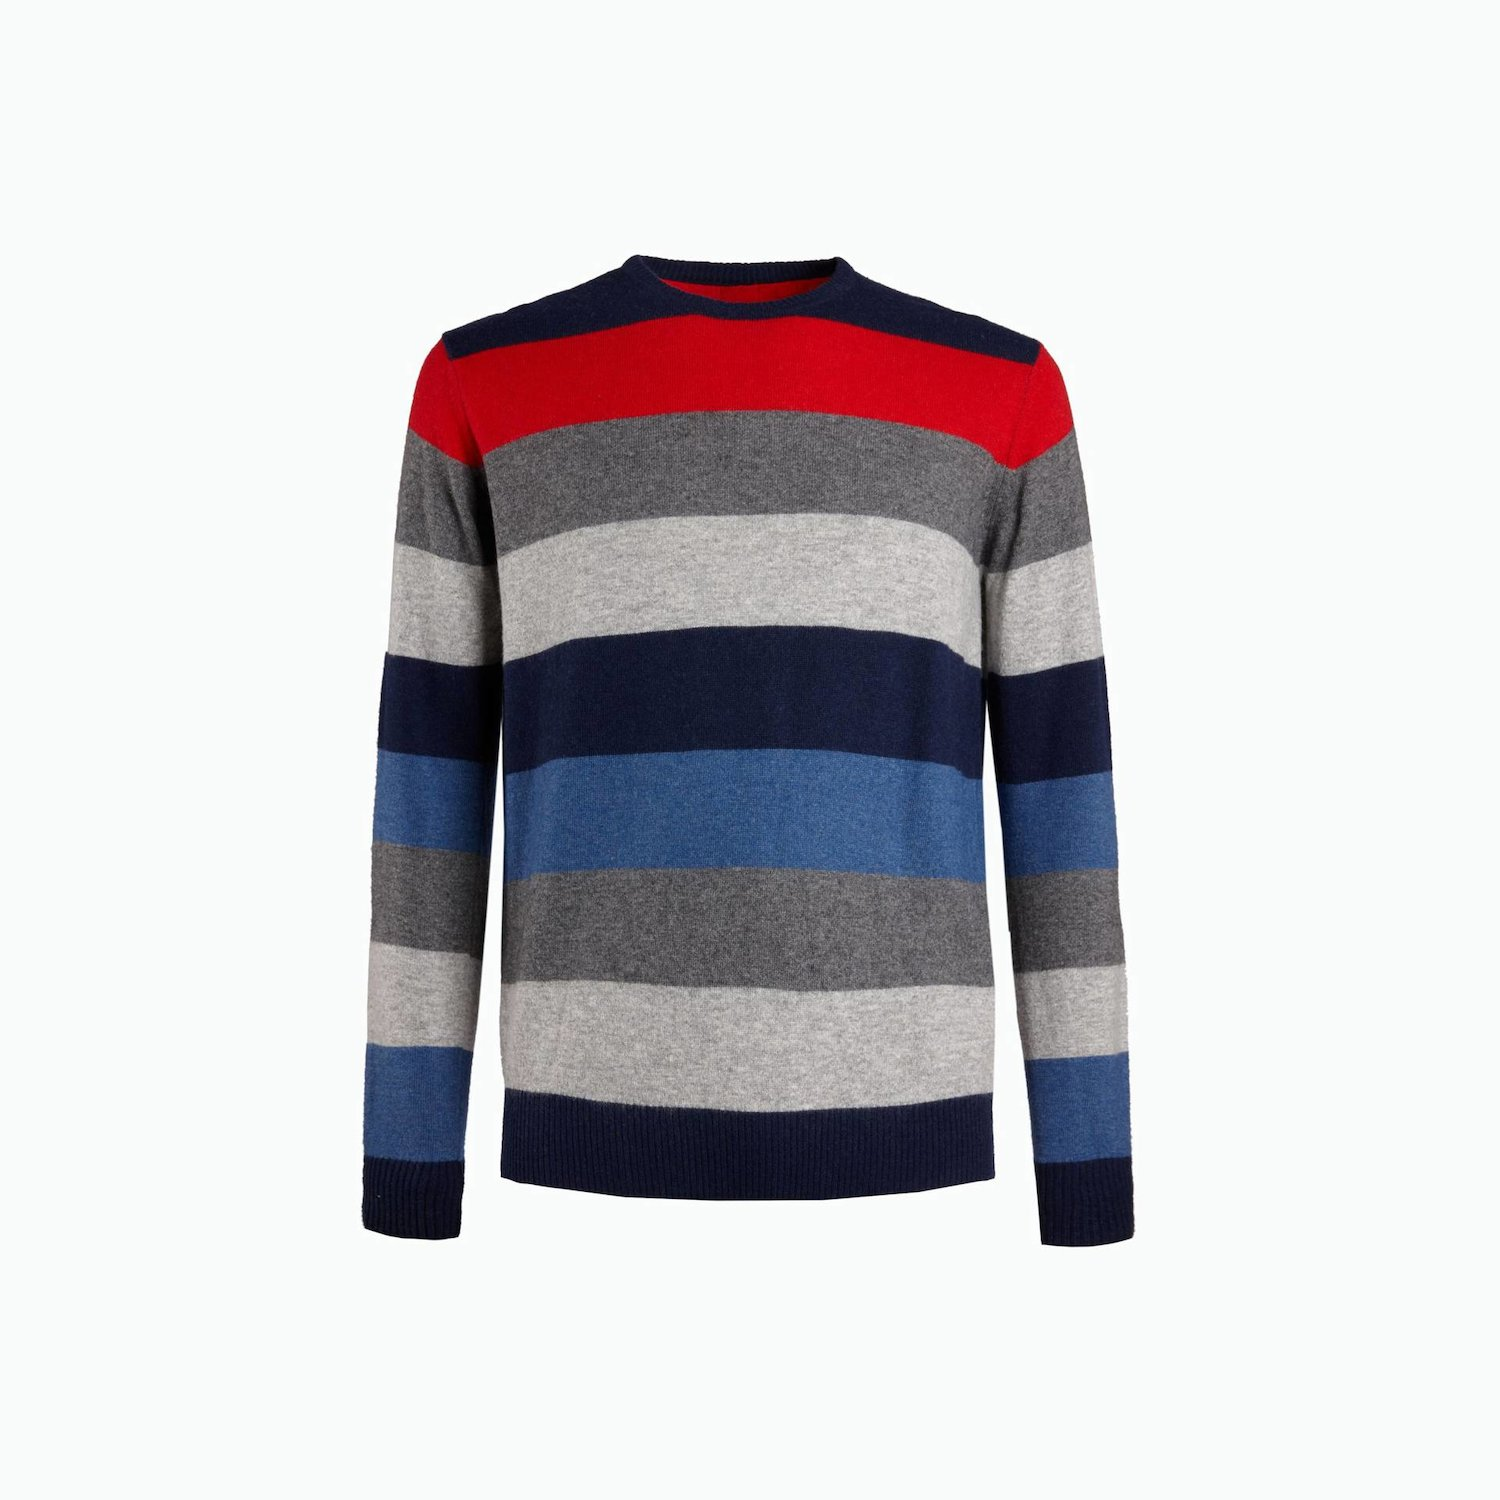 B135 sweater - Fancy Stripes